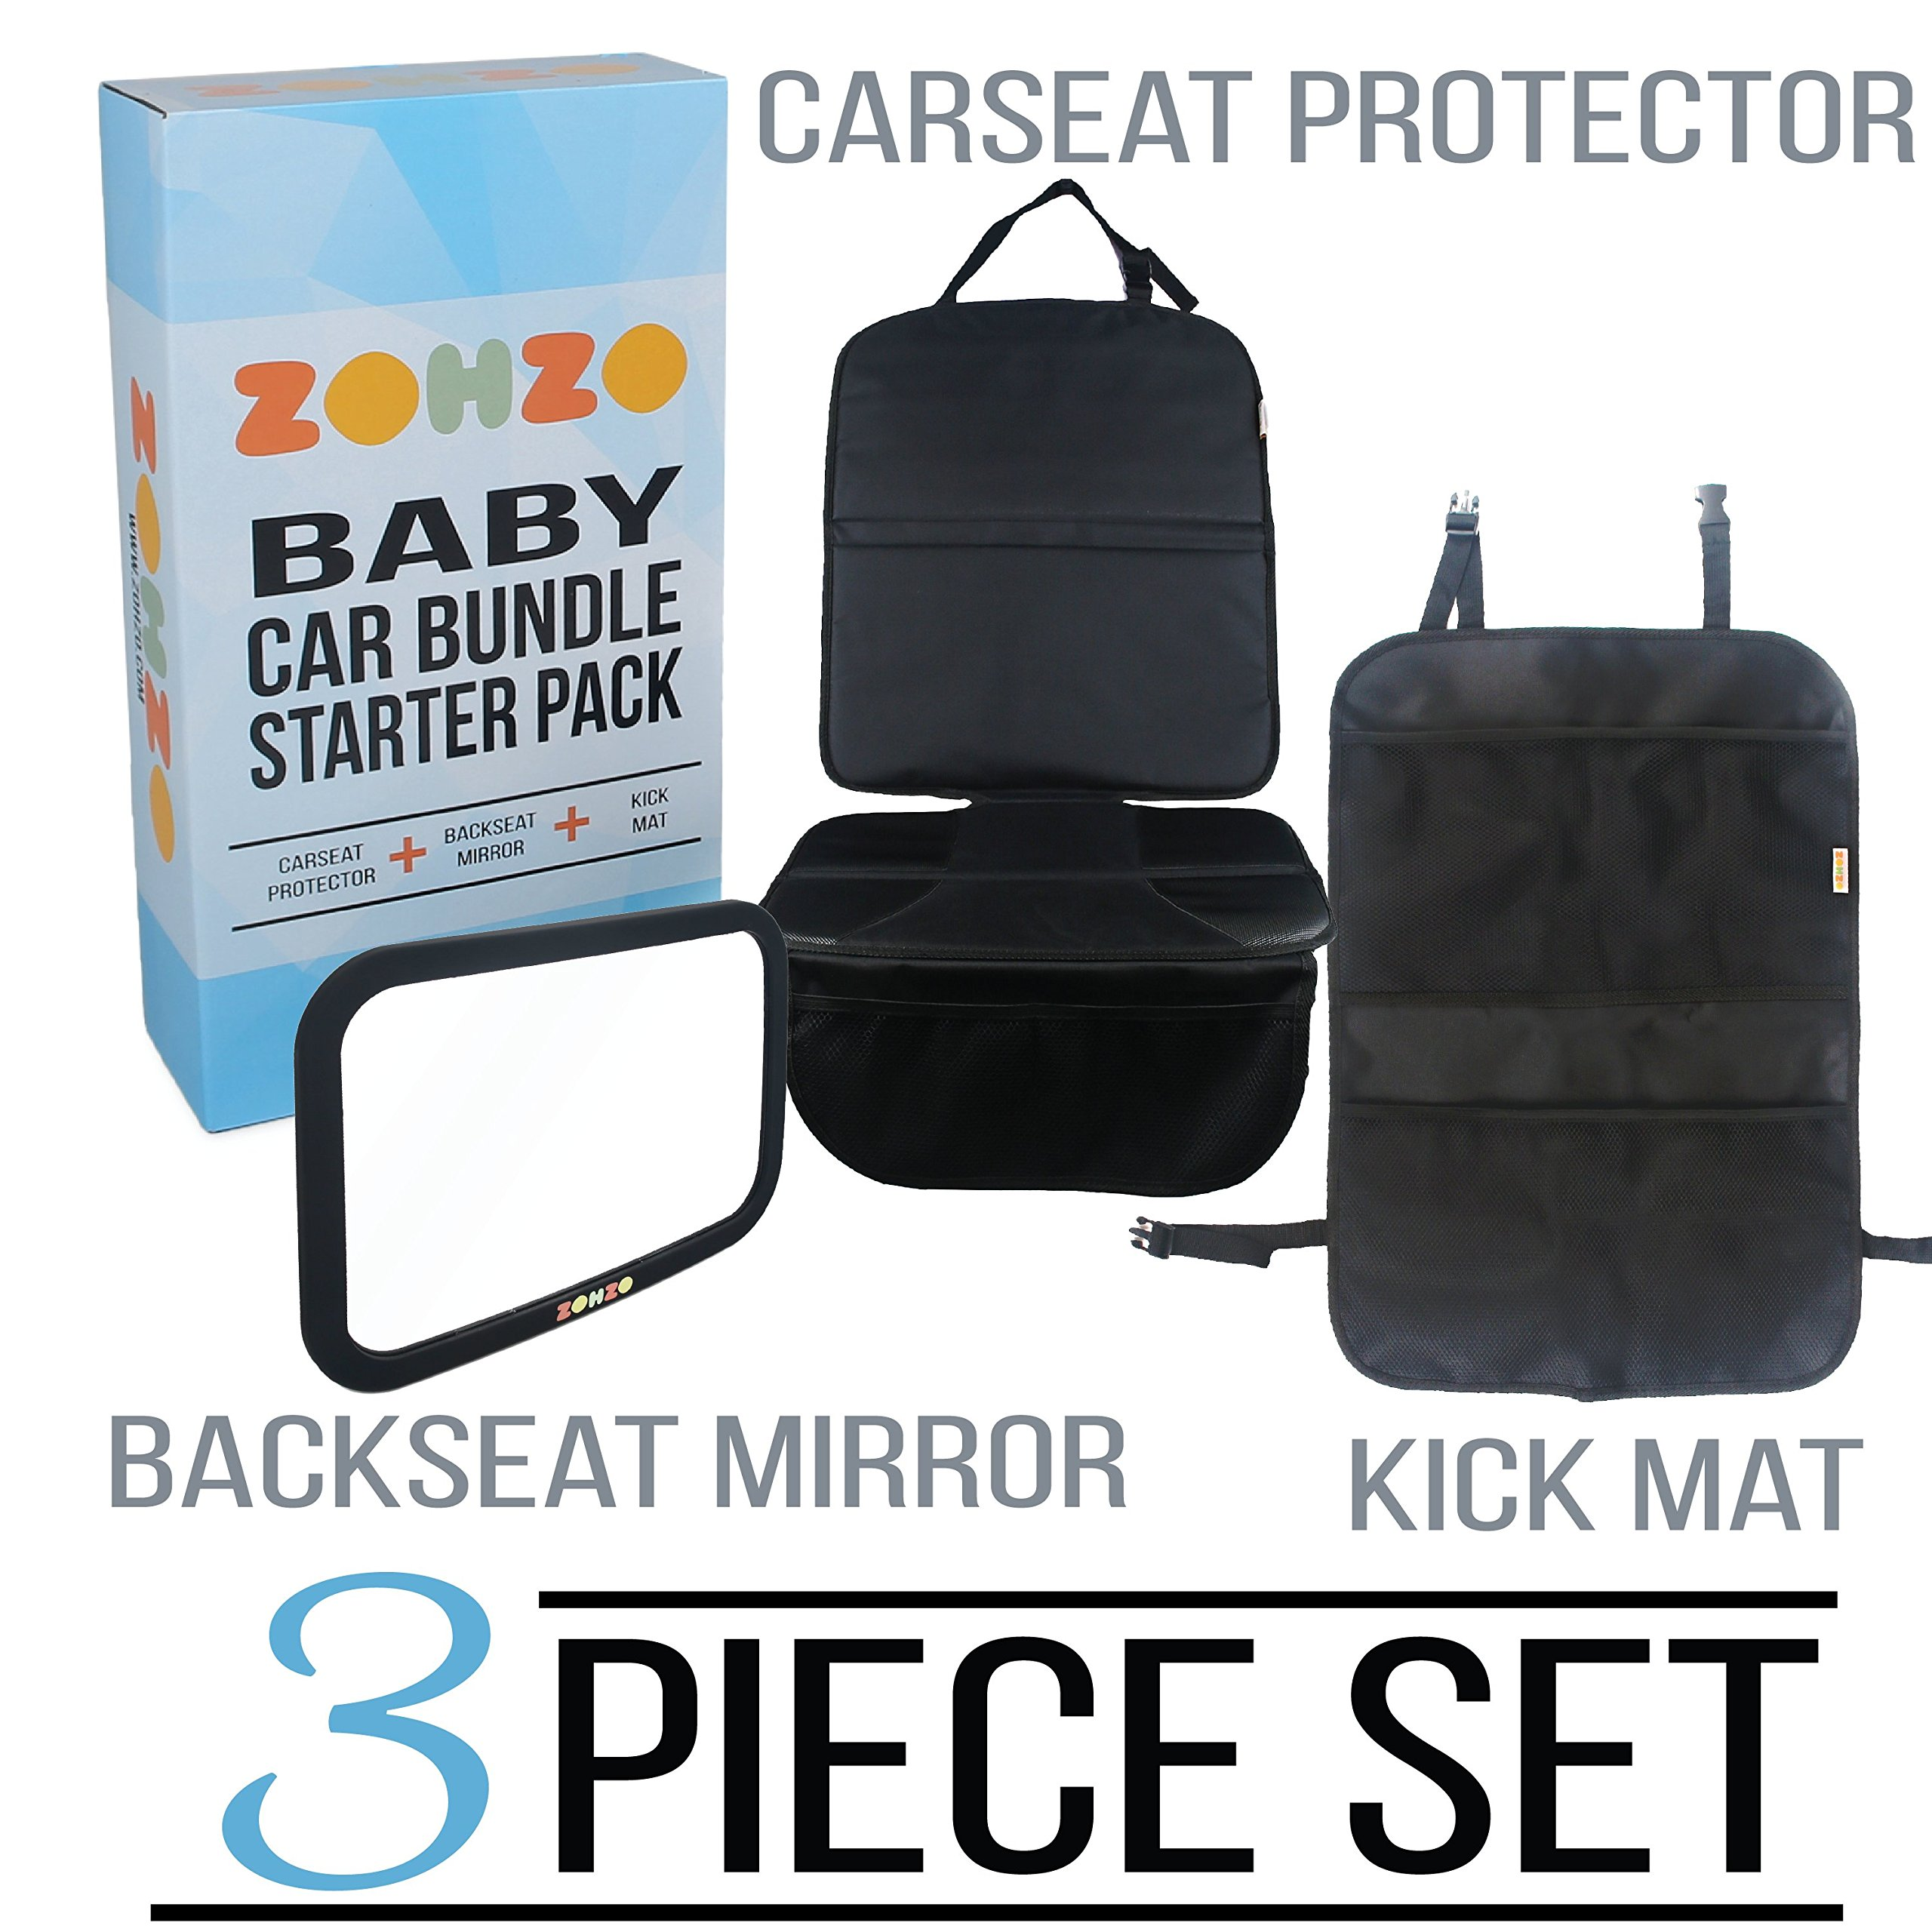 Zohzo Baby Car Bundle - Car Seat Protector Cover, Baby Car Mirror, Kick Mat Organizer| Perfect Gift for Baby Shower, New Infants, and Rear Facing Car Seats